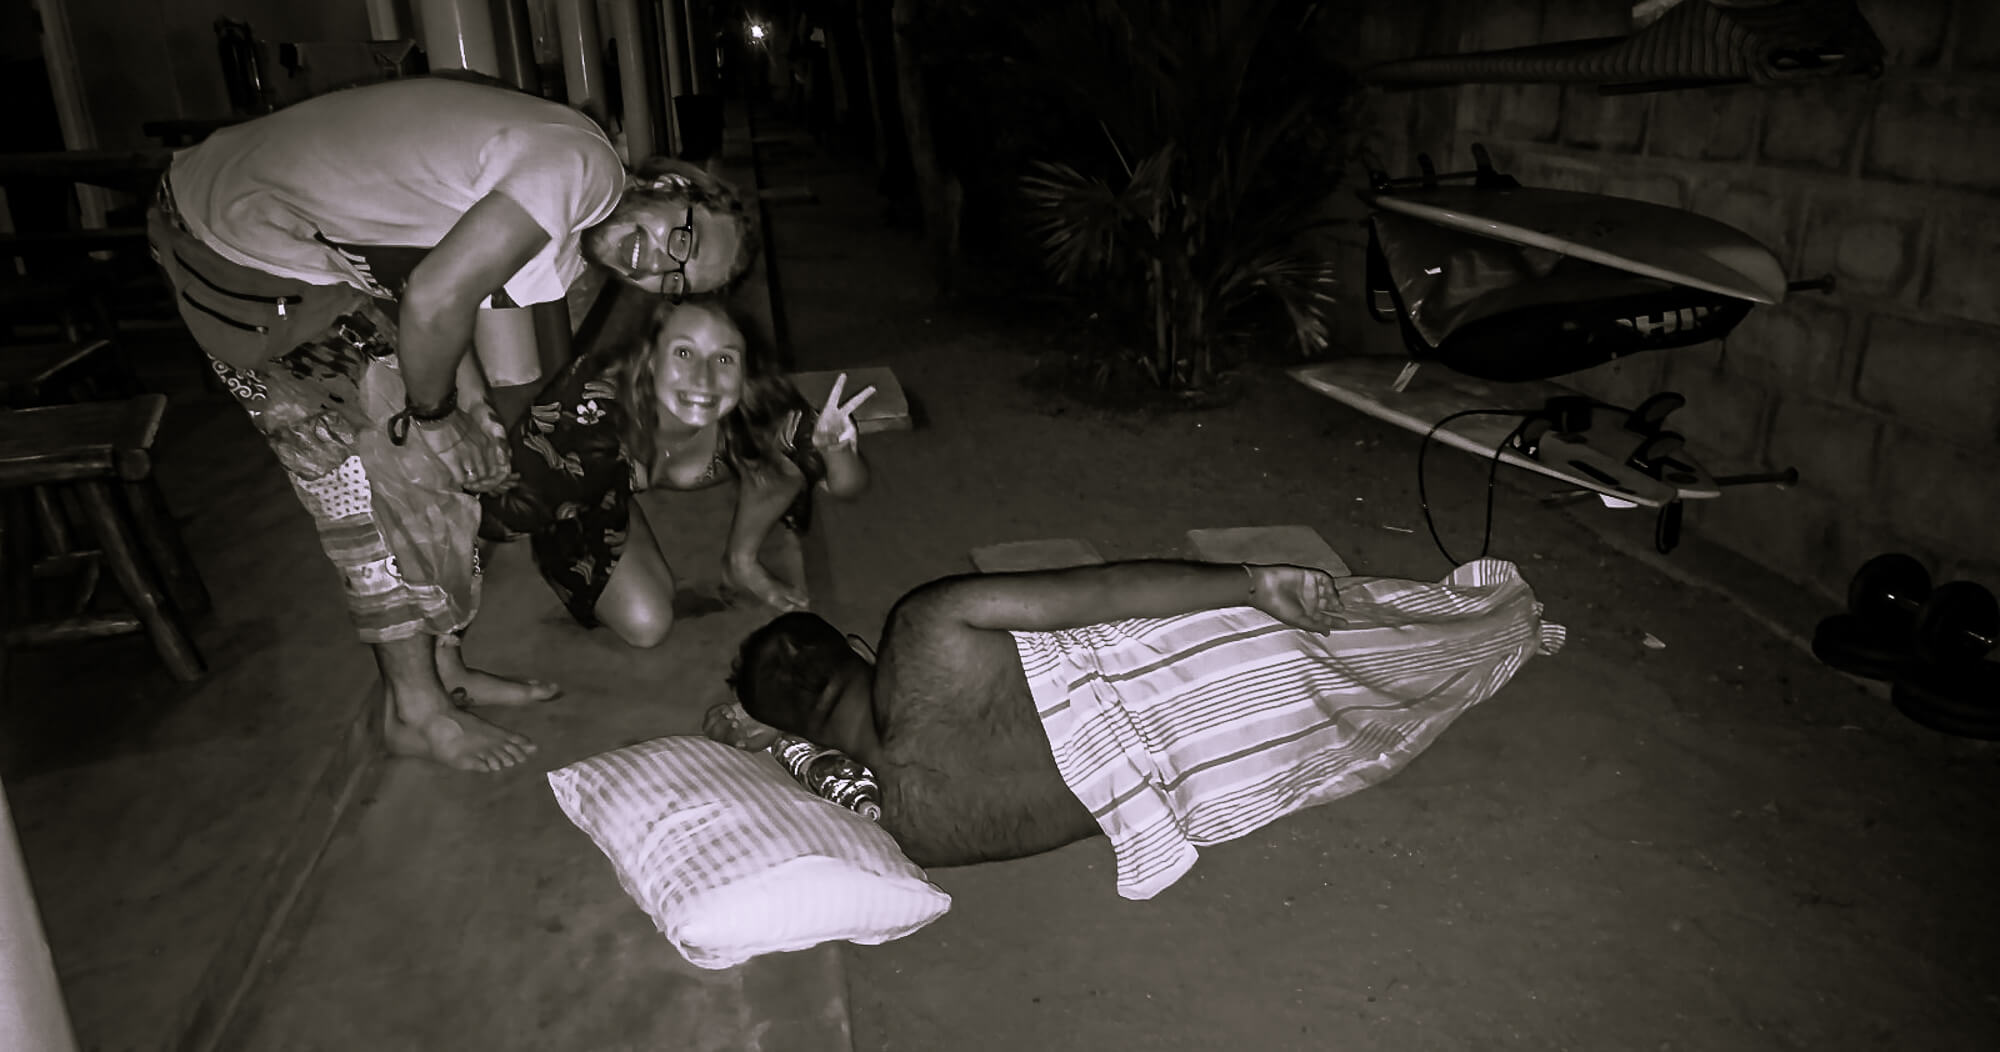 Sleeping off the night in the main party place in Sri Lanka